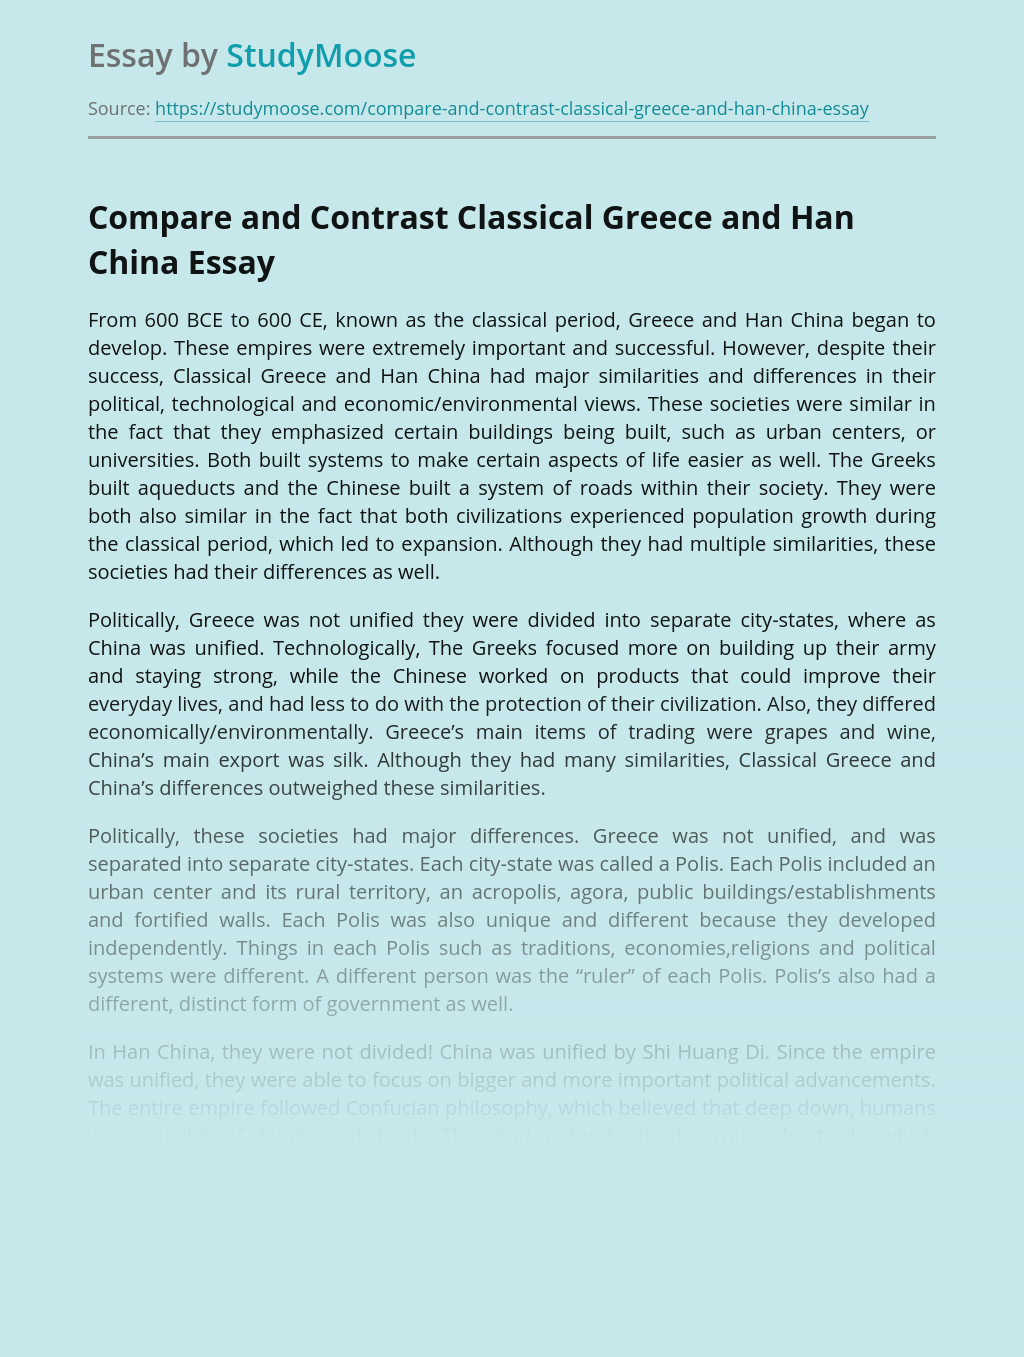 Compare and Contrast Classical Greece and Han China